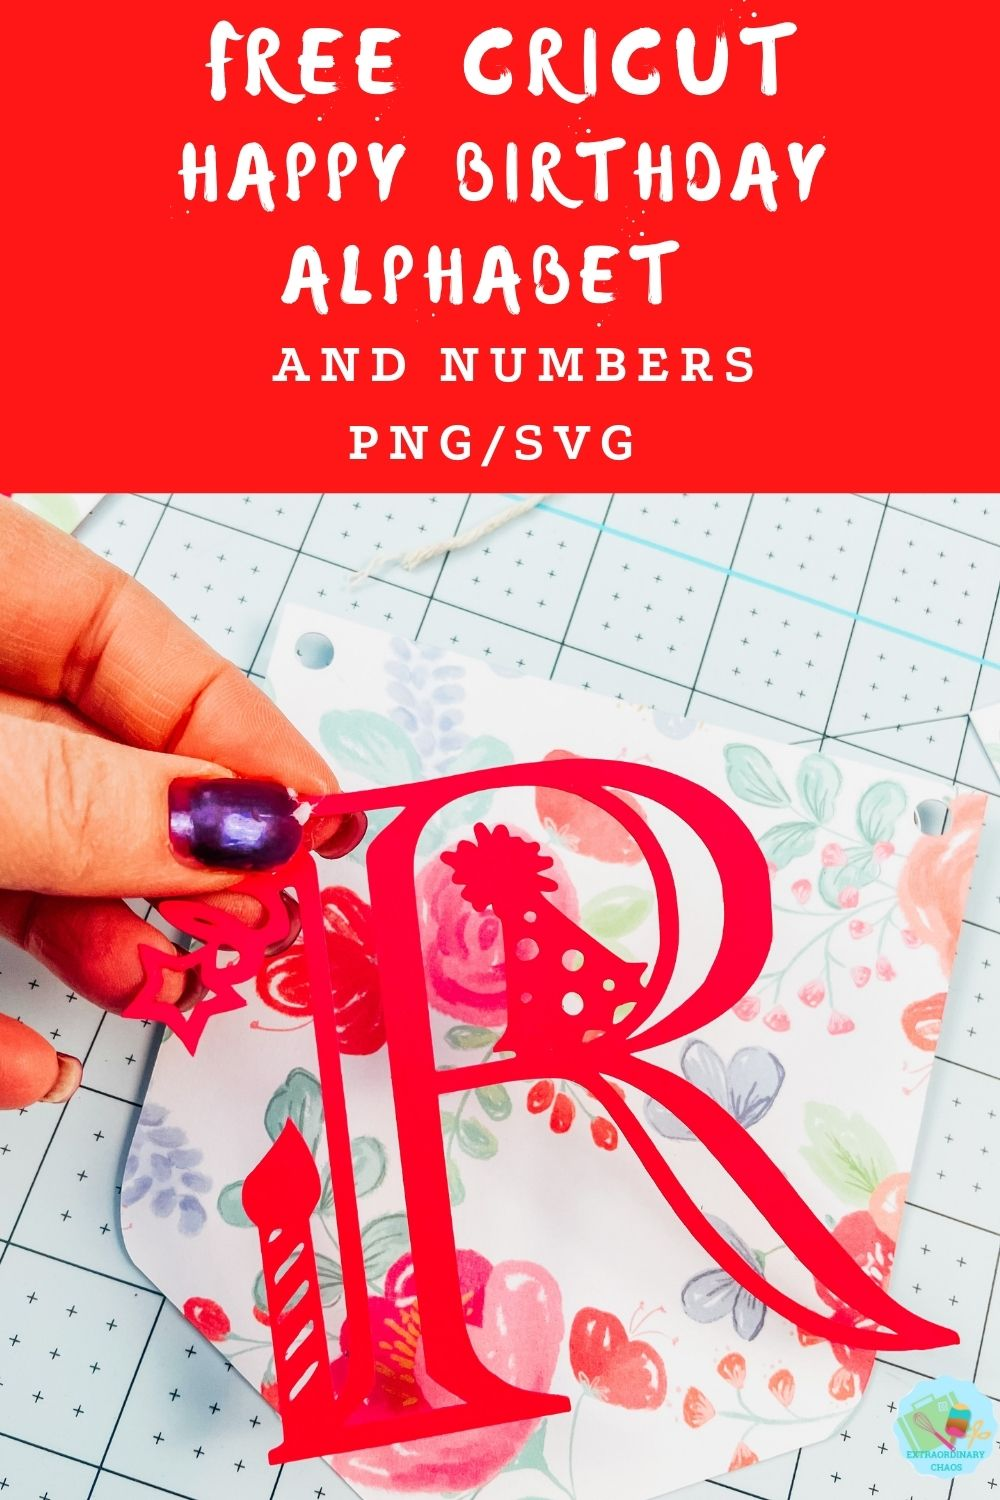 Free downloadable Happy Birthday Alphabet and number template for parties, banners, card making and invitations